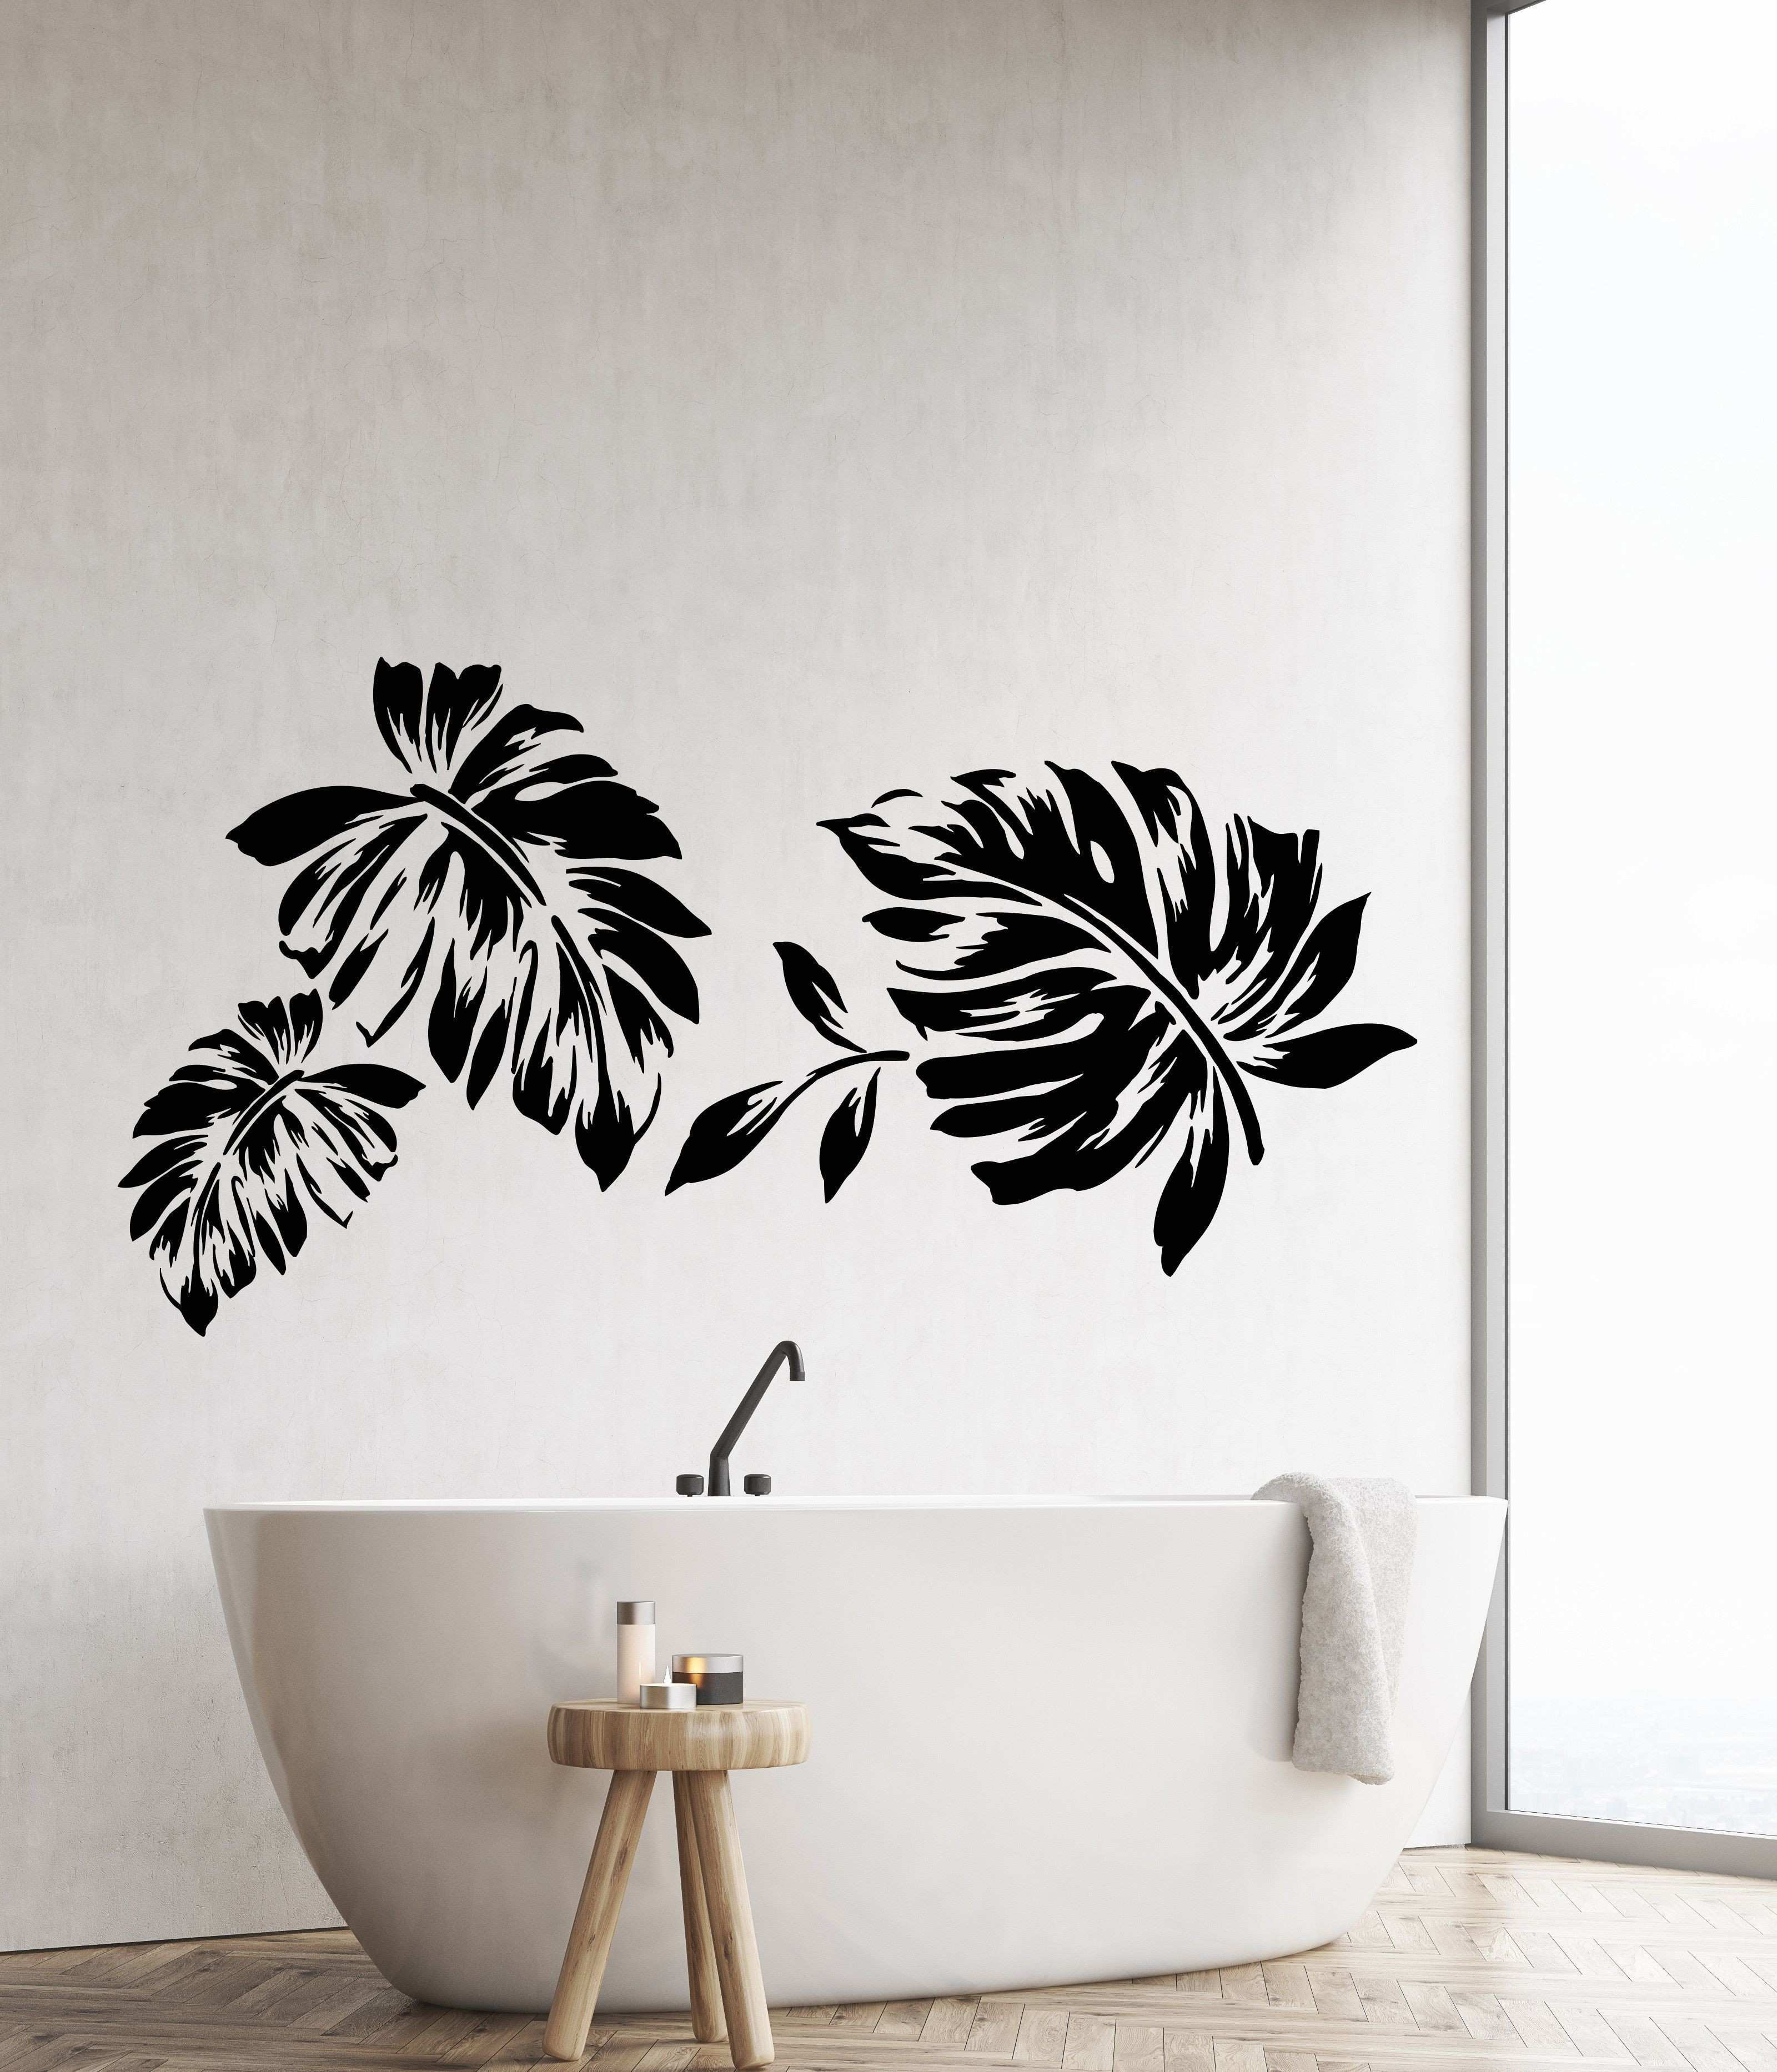 Interior Design 20 Butterfly Wall Decor Exciting Wall Decals For